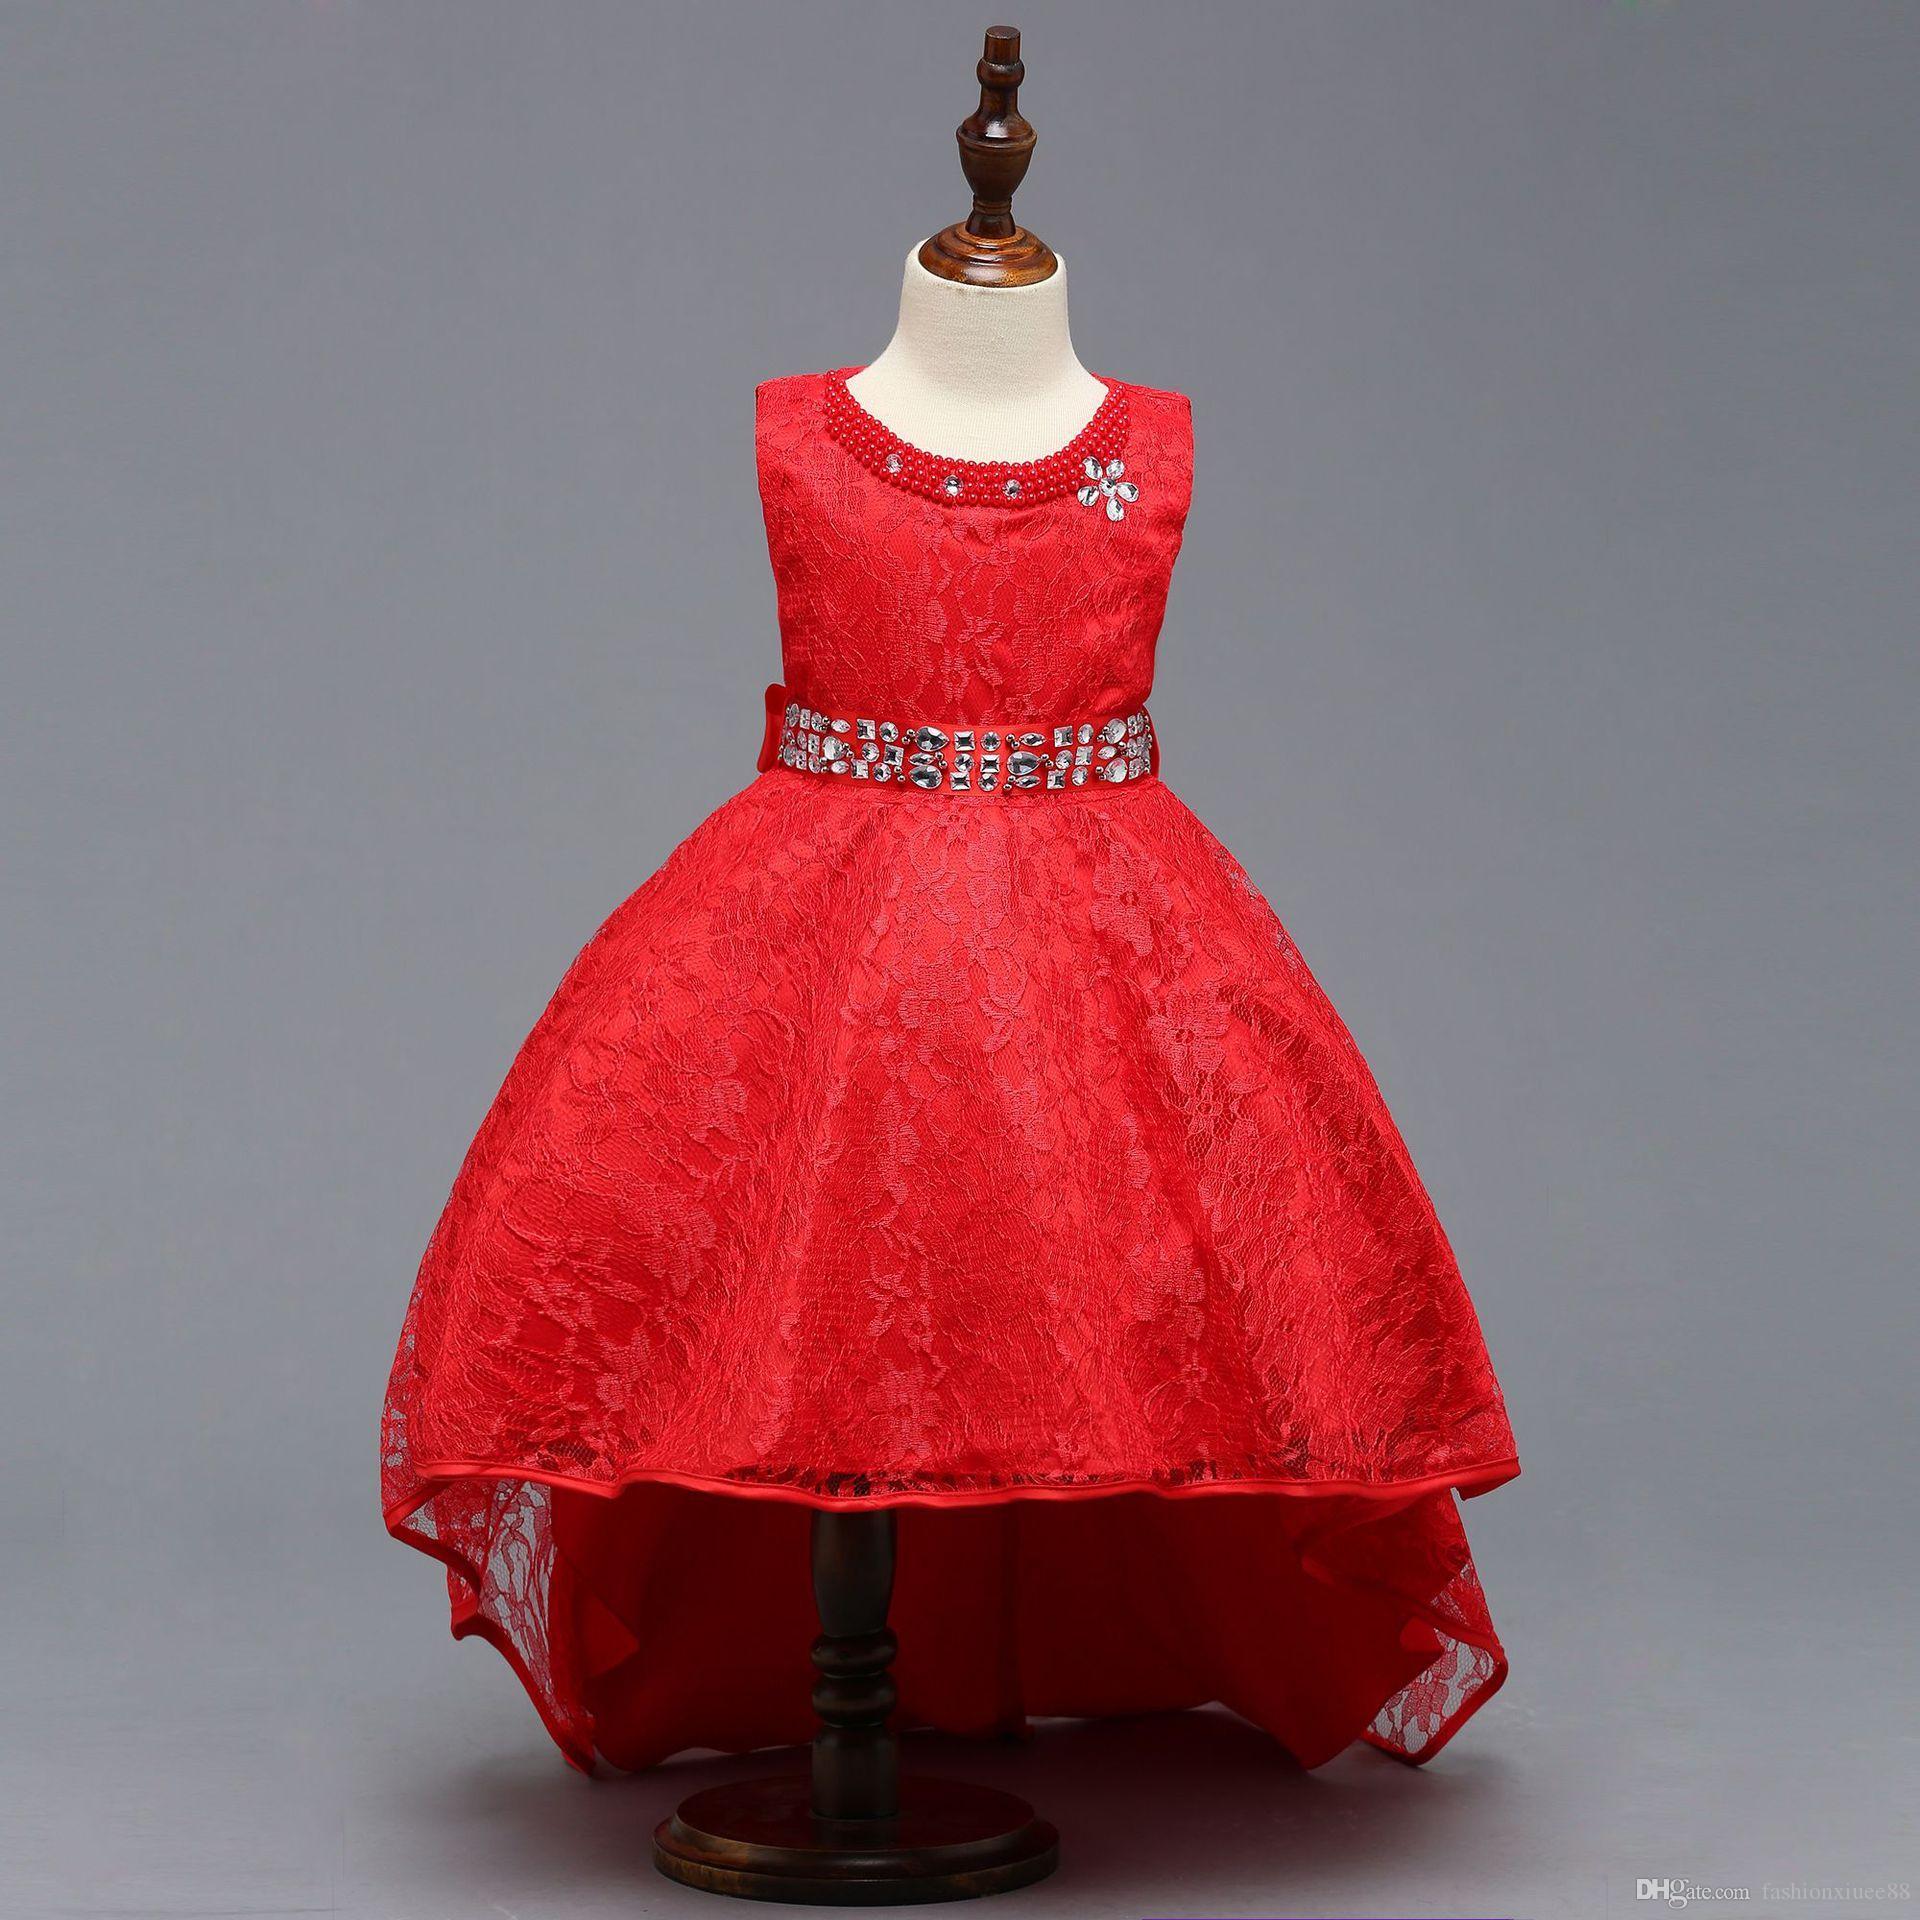 New Arrival Pretty Flower Girl Dresses Appliques Kids Formal Wear